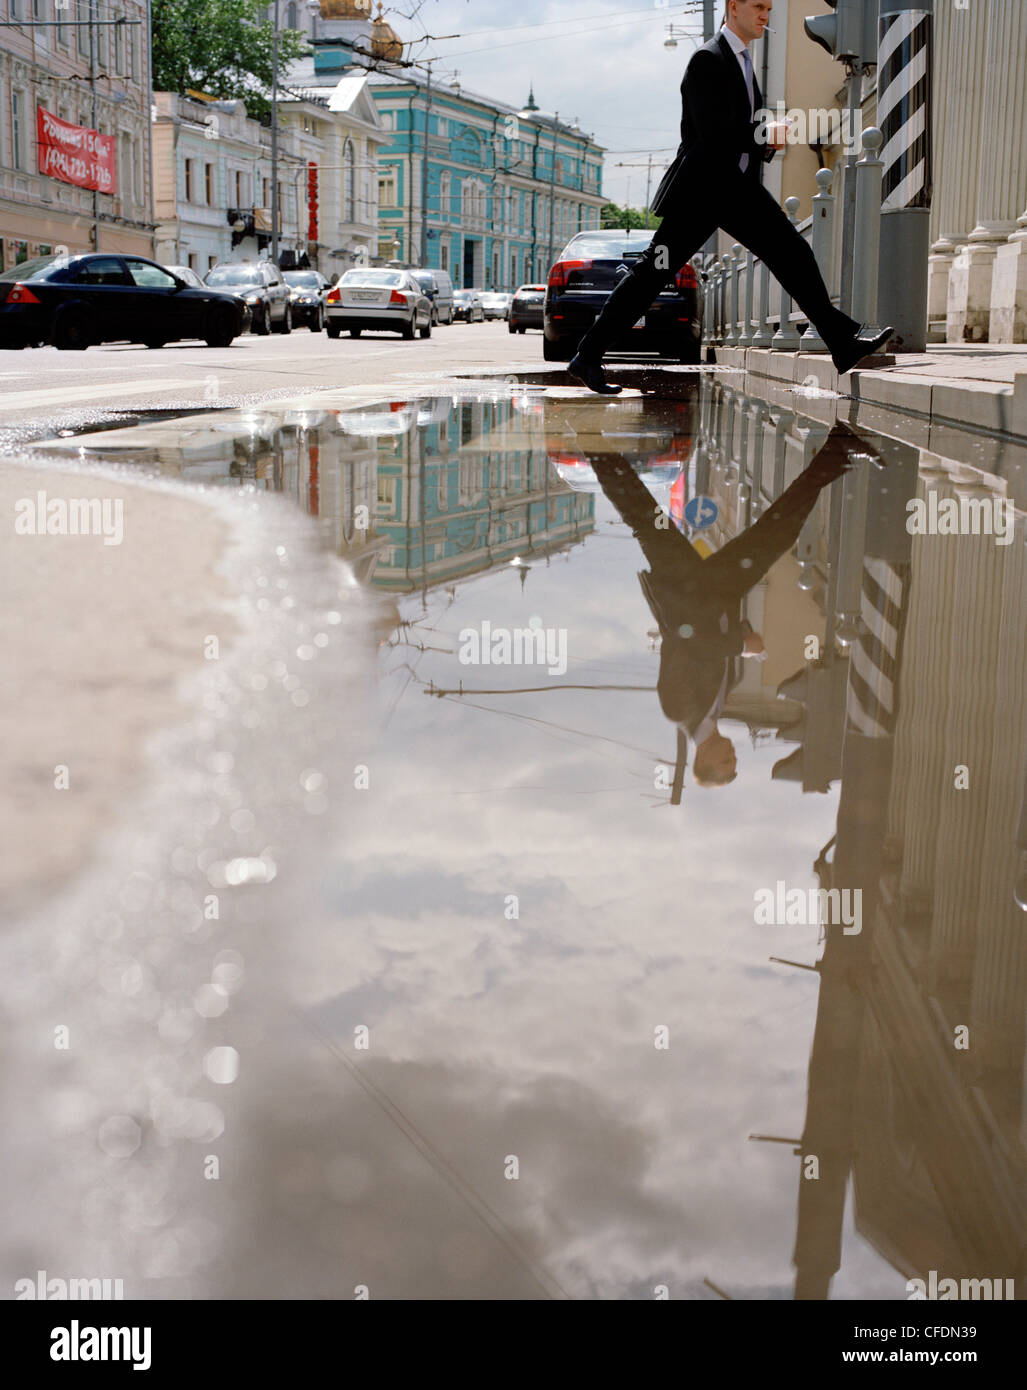 Pedestrian crossing a puddle in Wolchonka Uliza street, Moscow, Russia, Europe - Stock Image